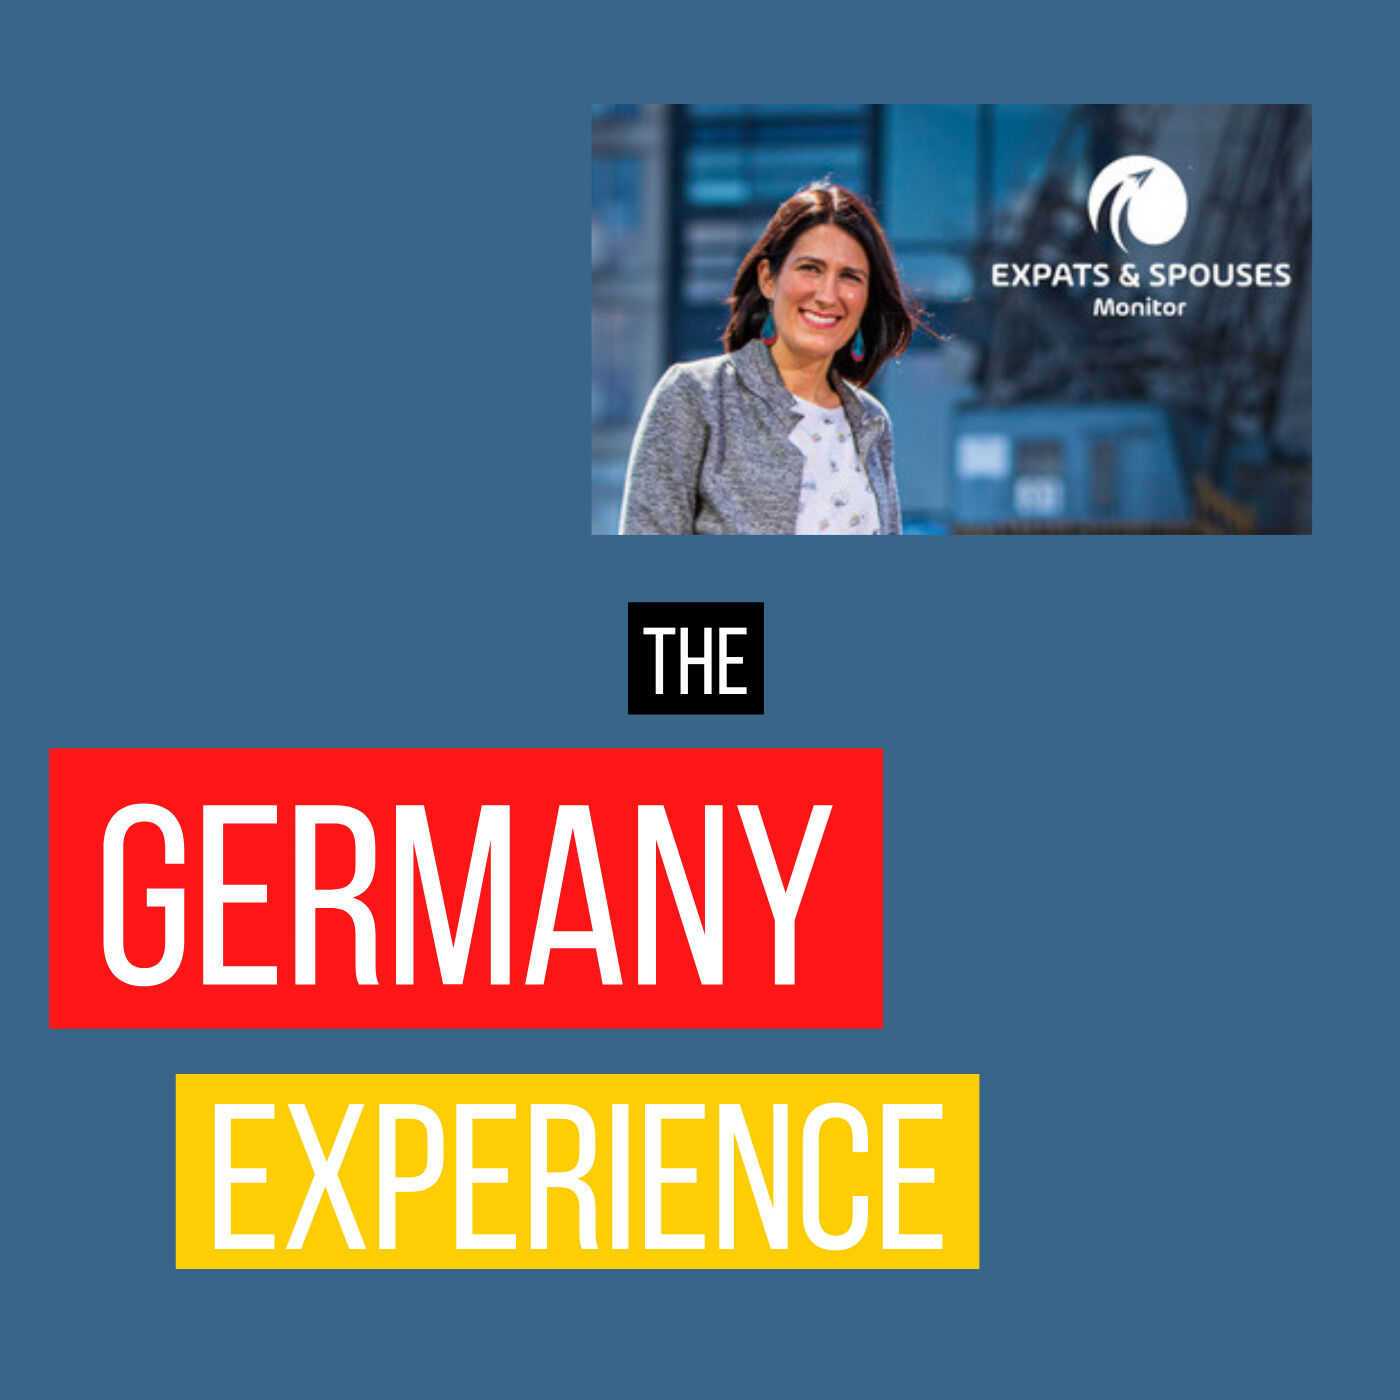 The gender expatriation gap, trailing spouses, and the expat skill pool in Germany (Amaia from Spain)